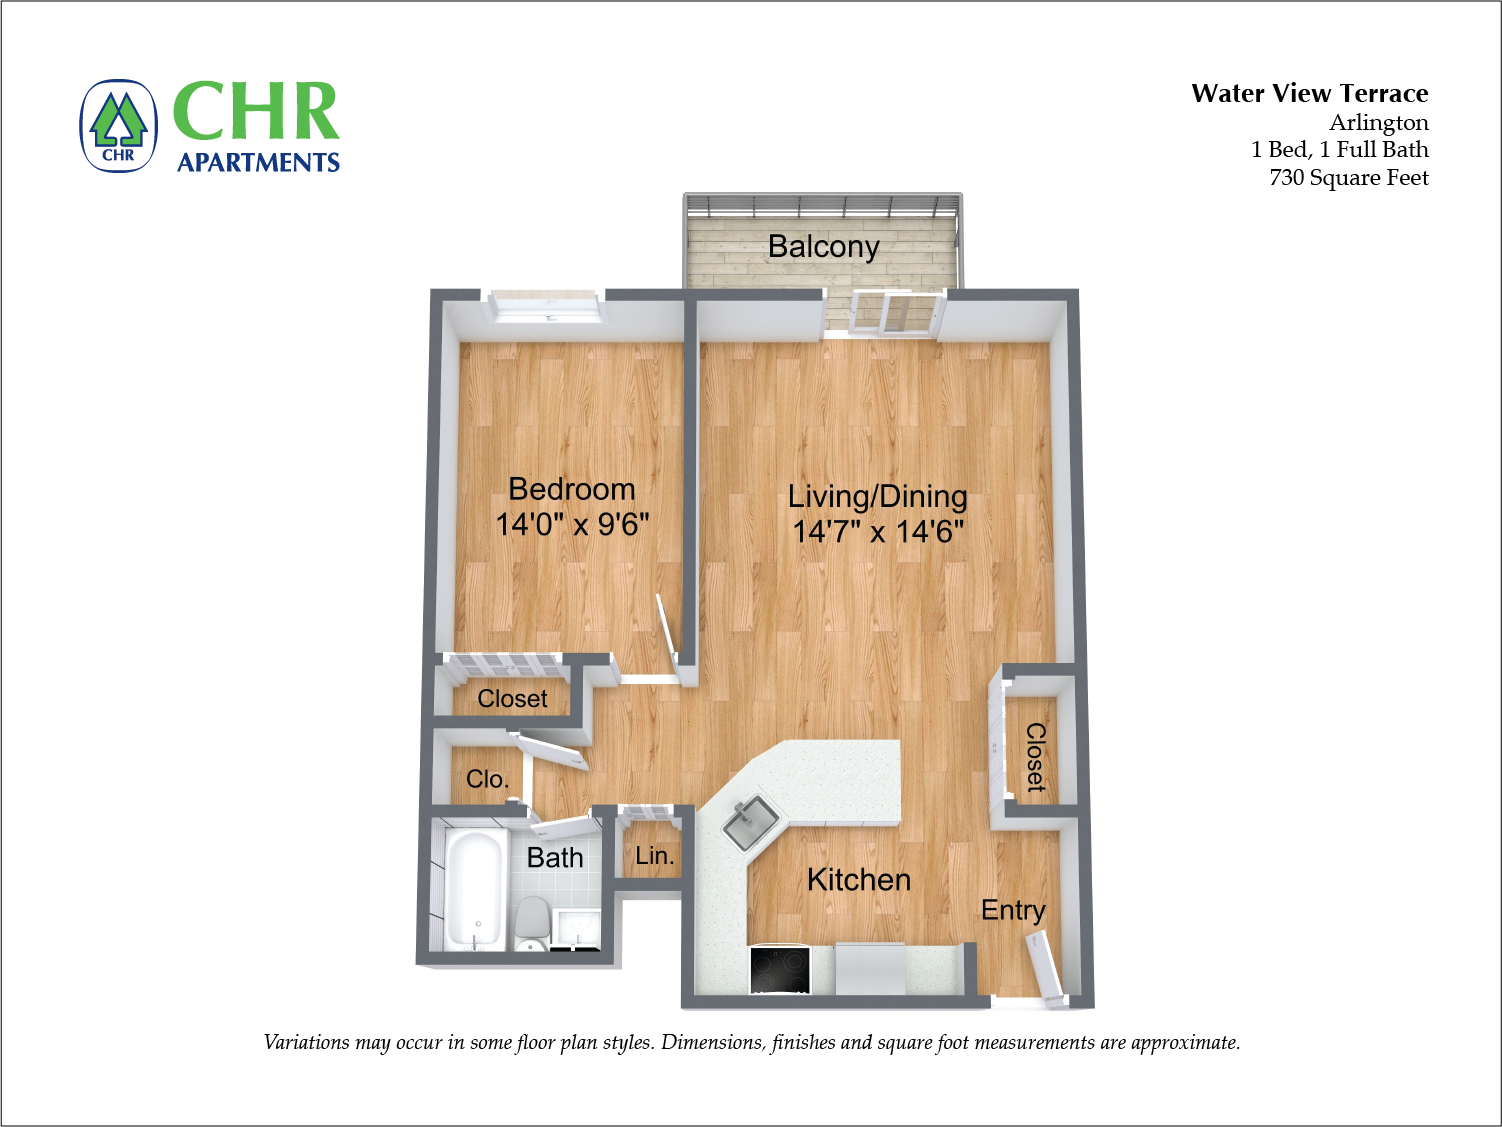 Click to view 1 BR w/ Balcony & A/C floor plan gallery